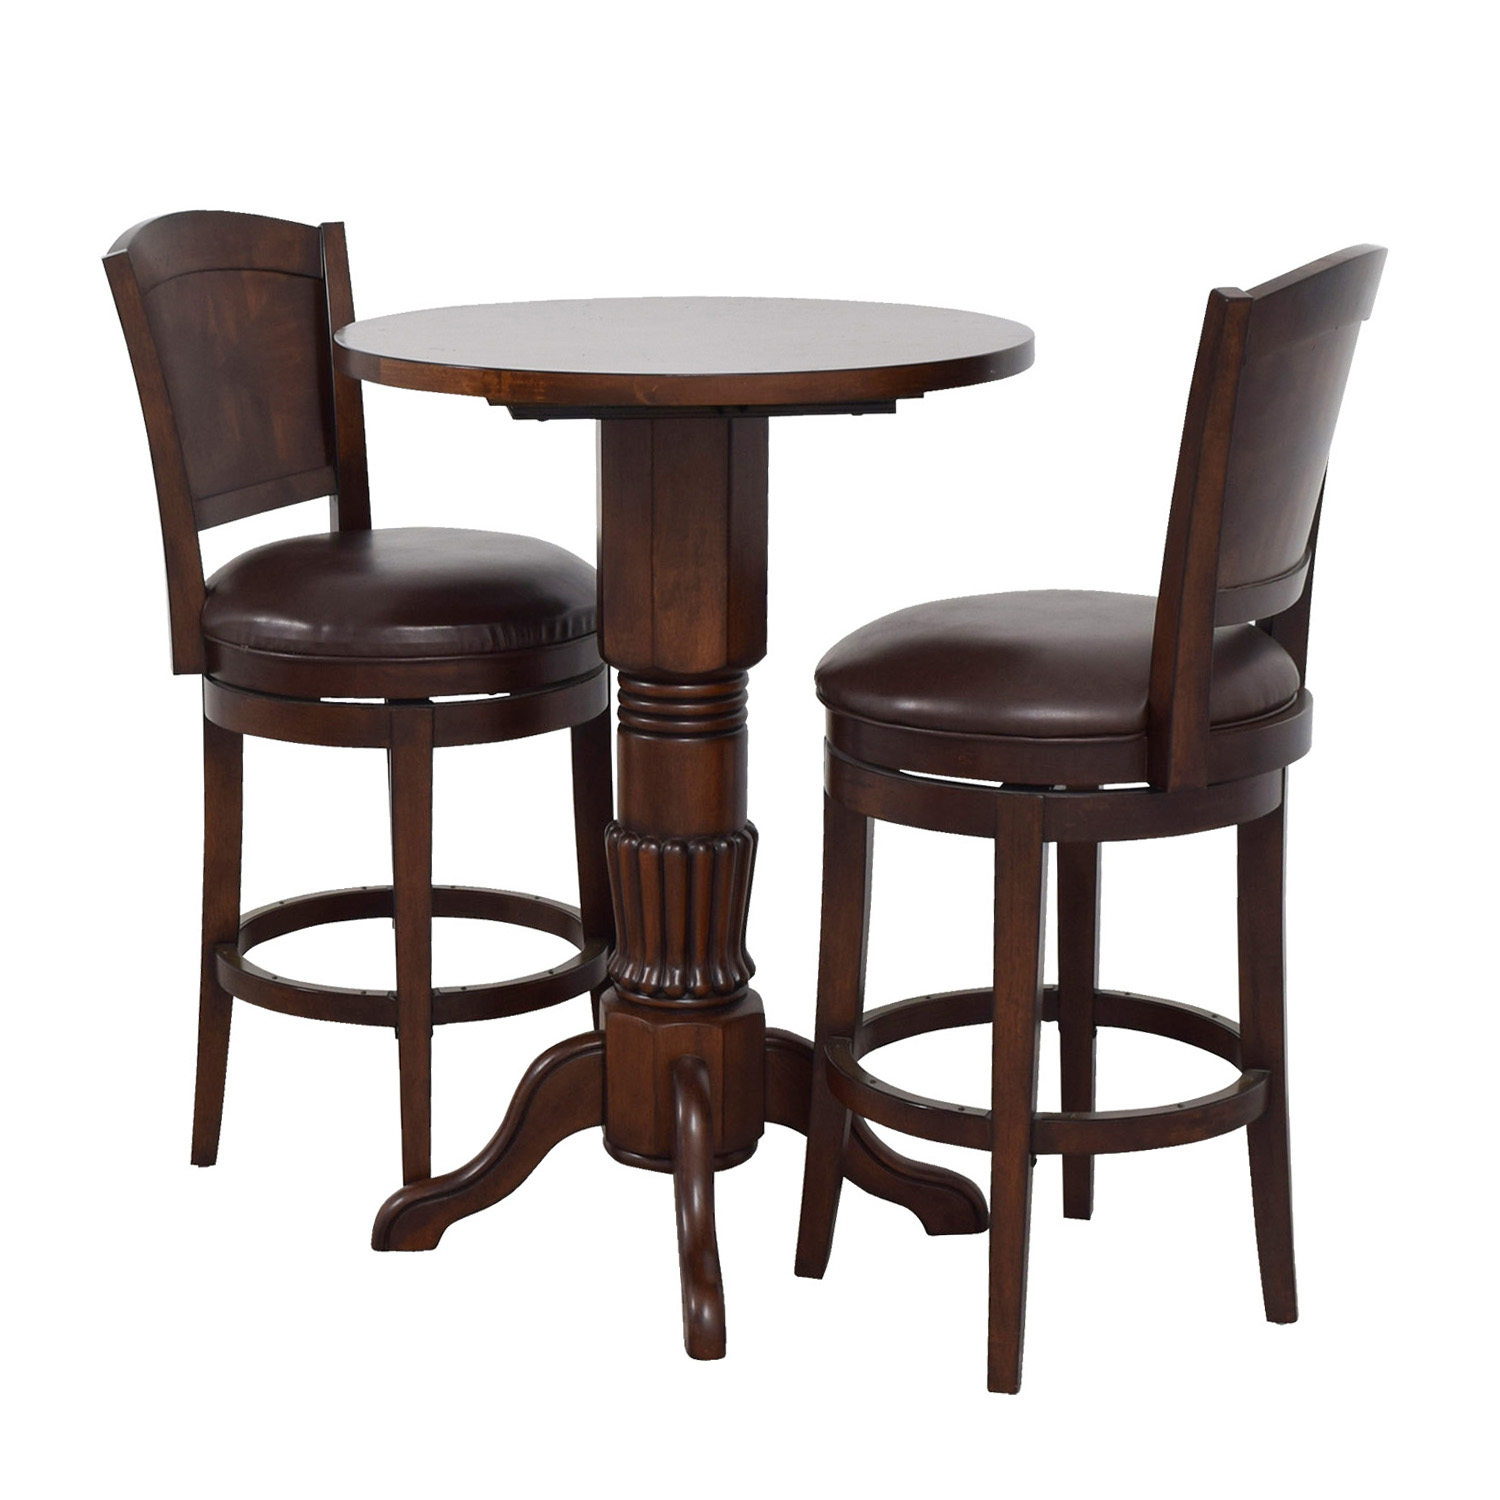 Table And Stools Sets: Raymour & Flanigan Raymour & Flanigan Pub Table